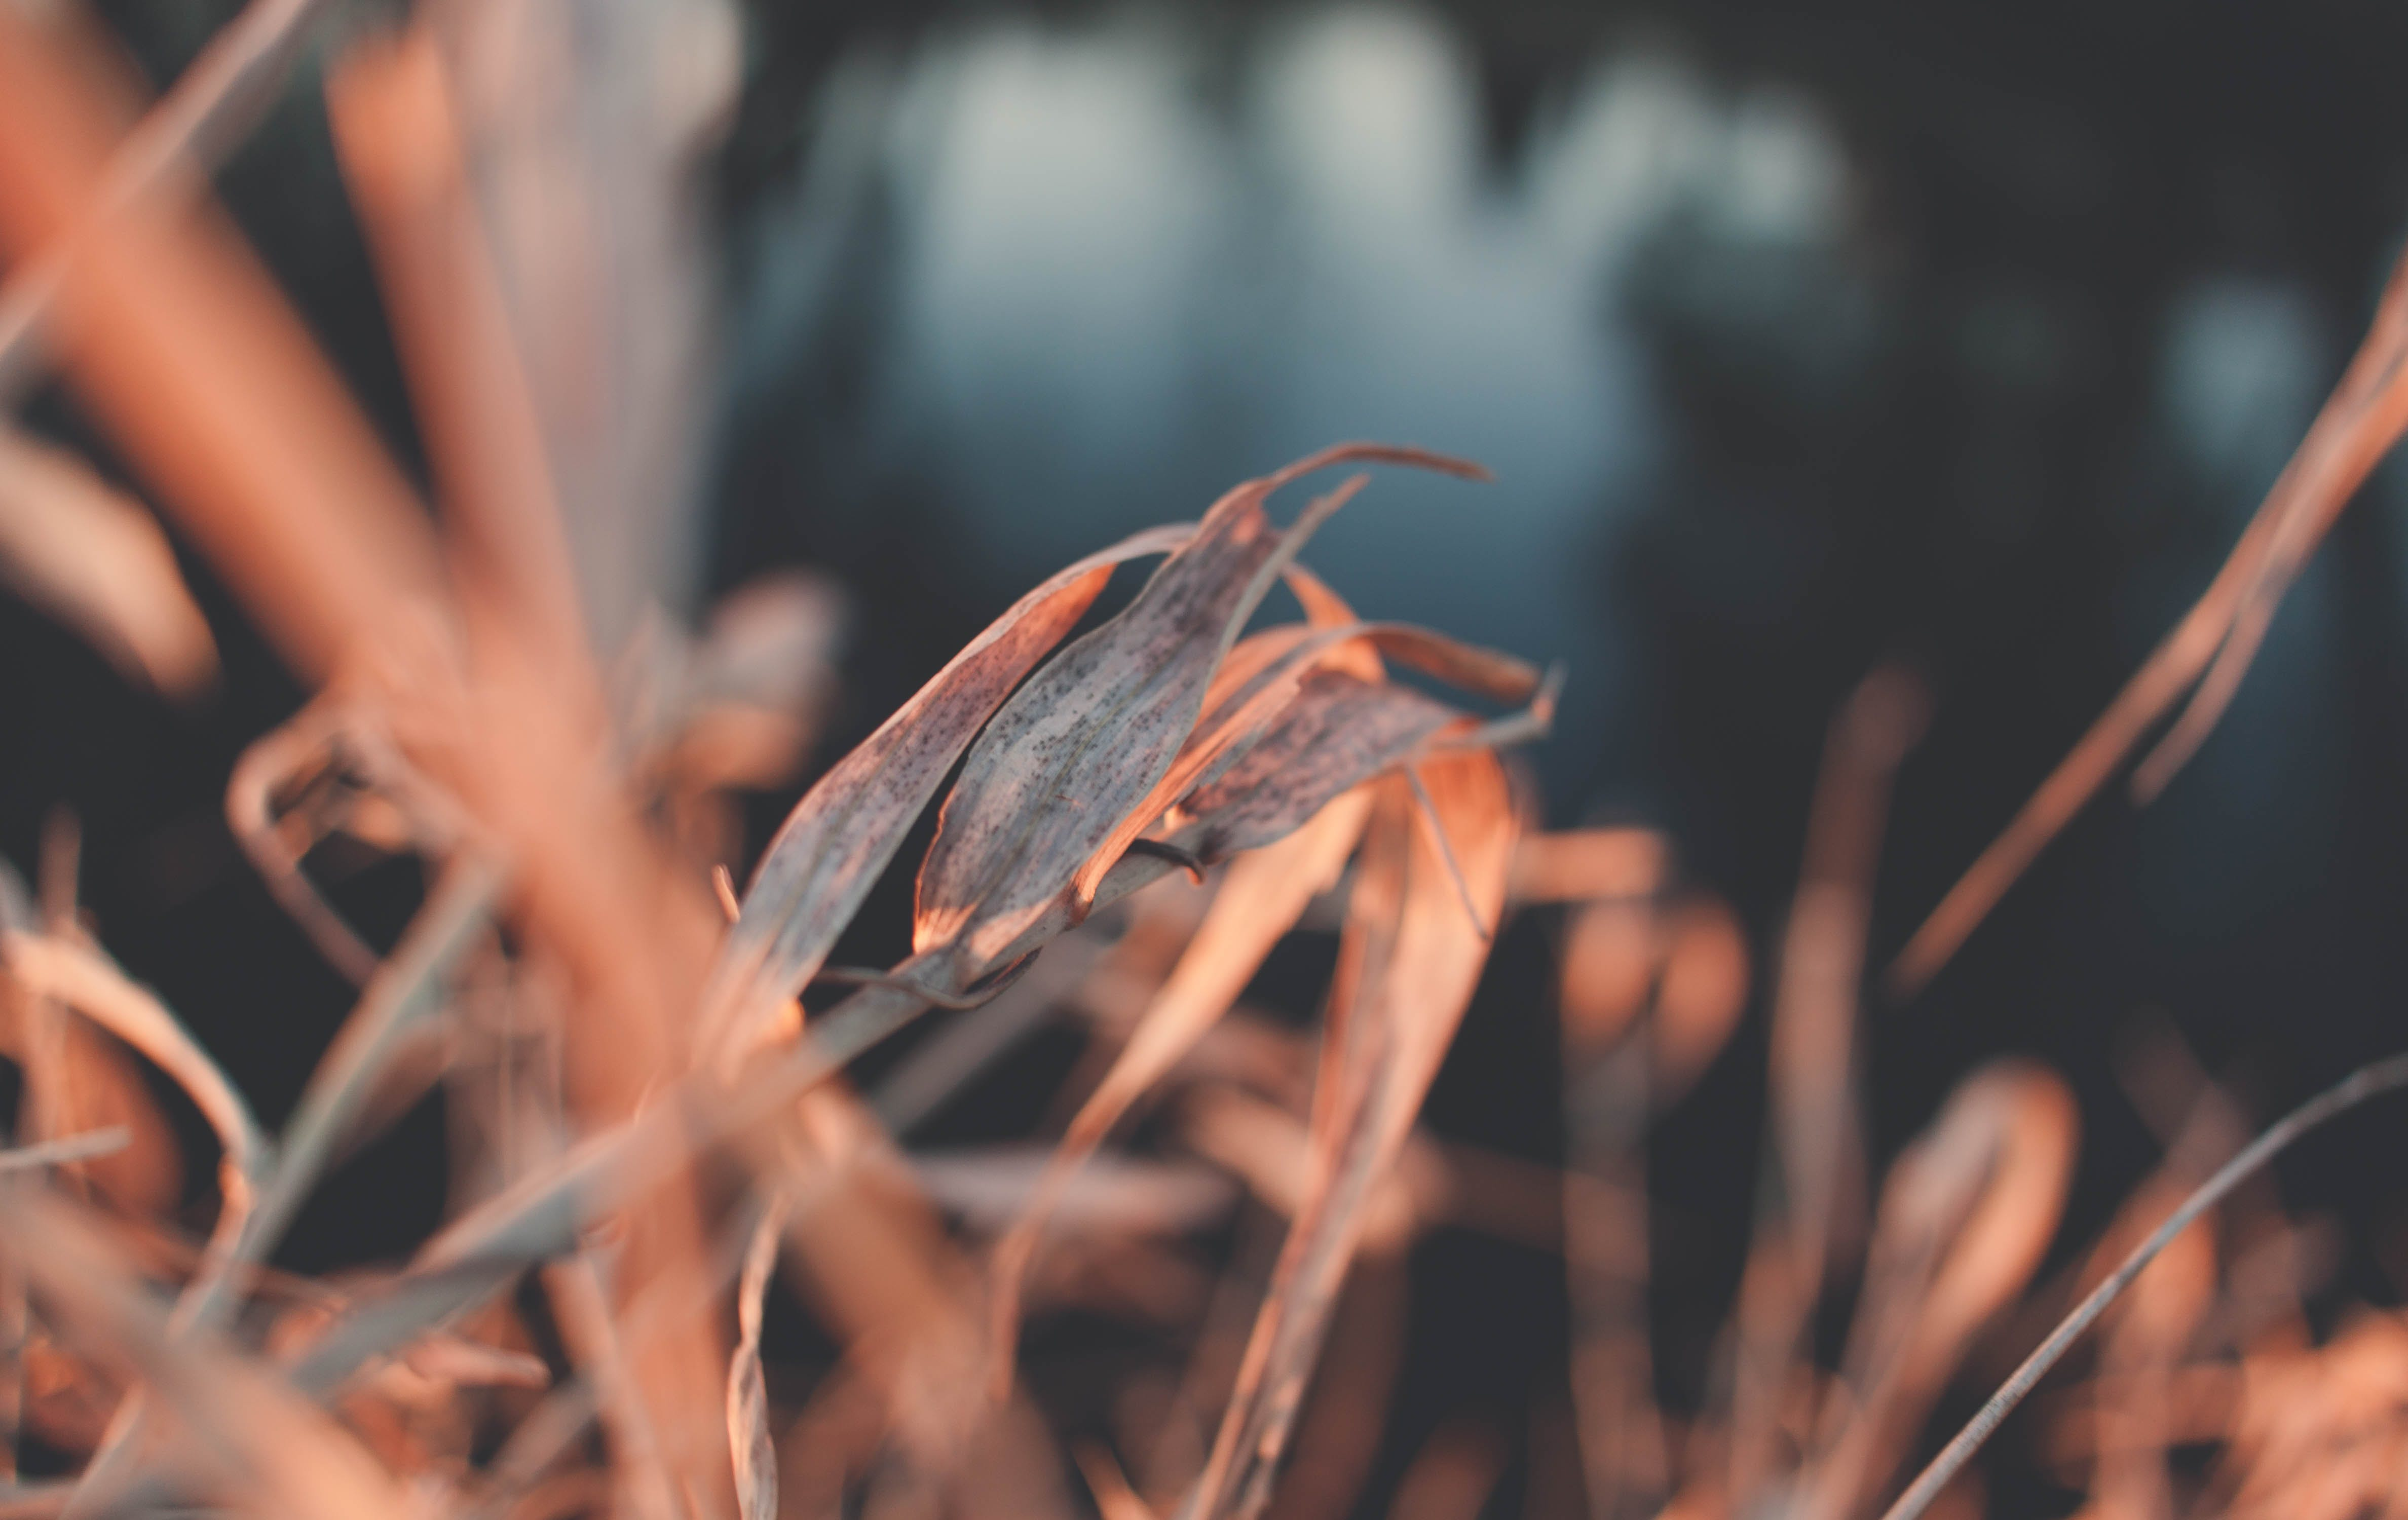 Close-up Photography of Brown-leafed Plant